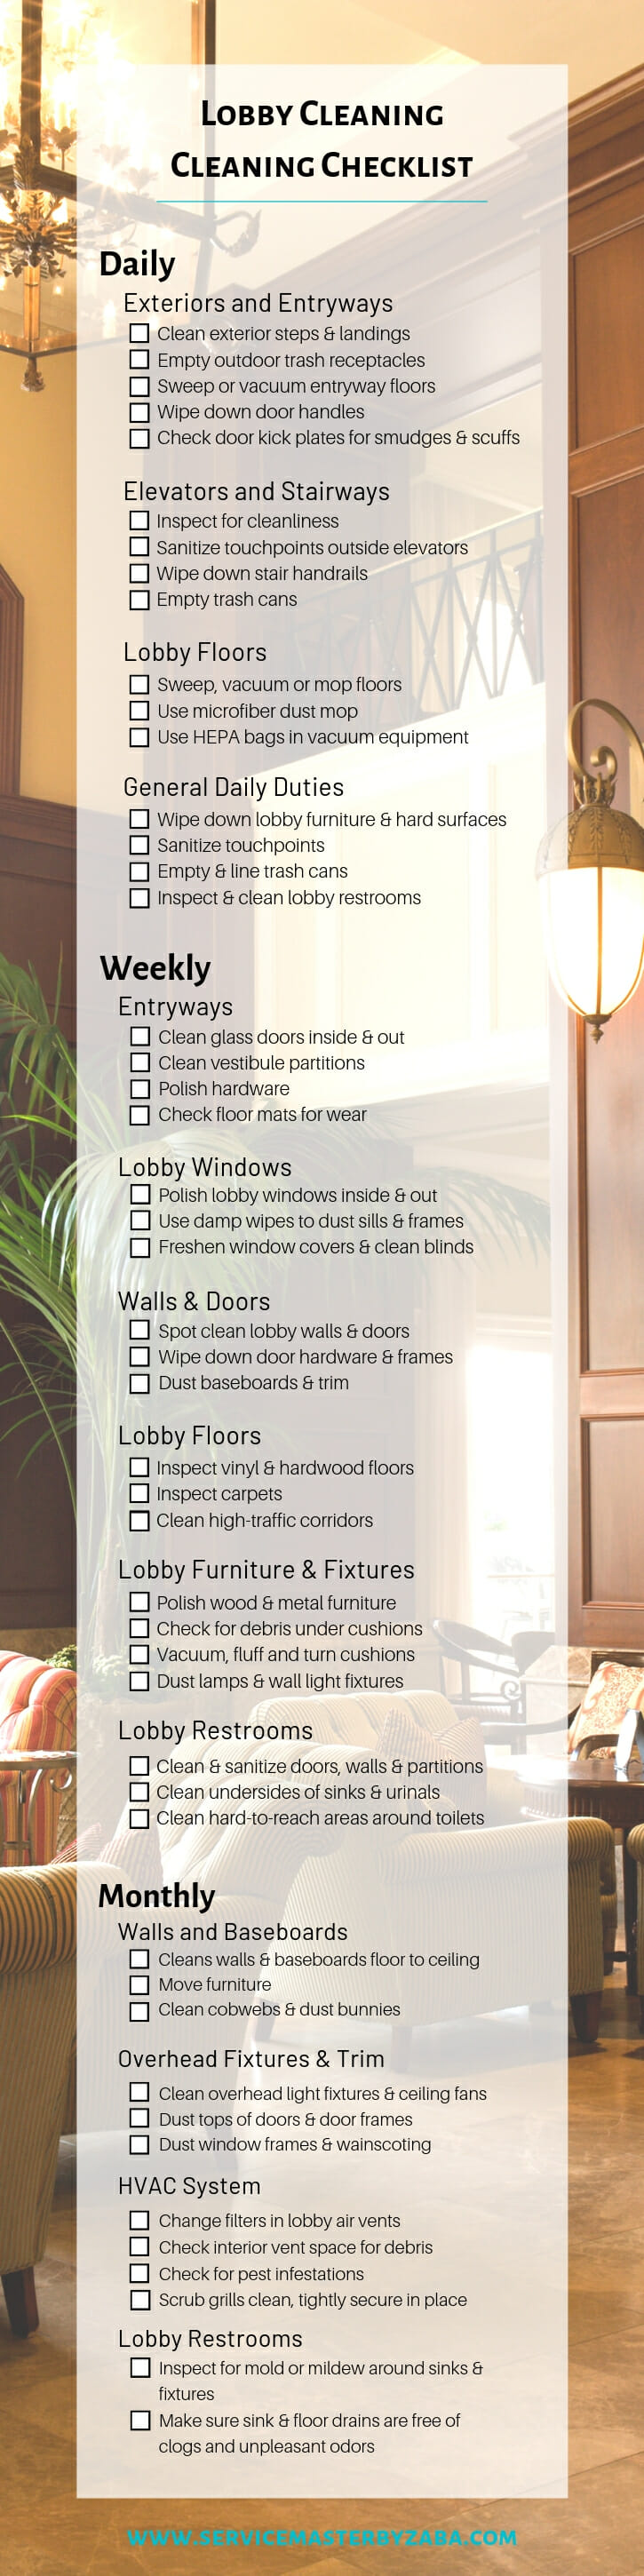 lobby cleaning checklist